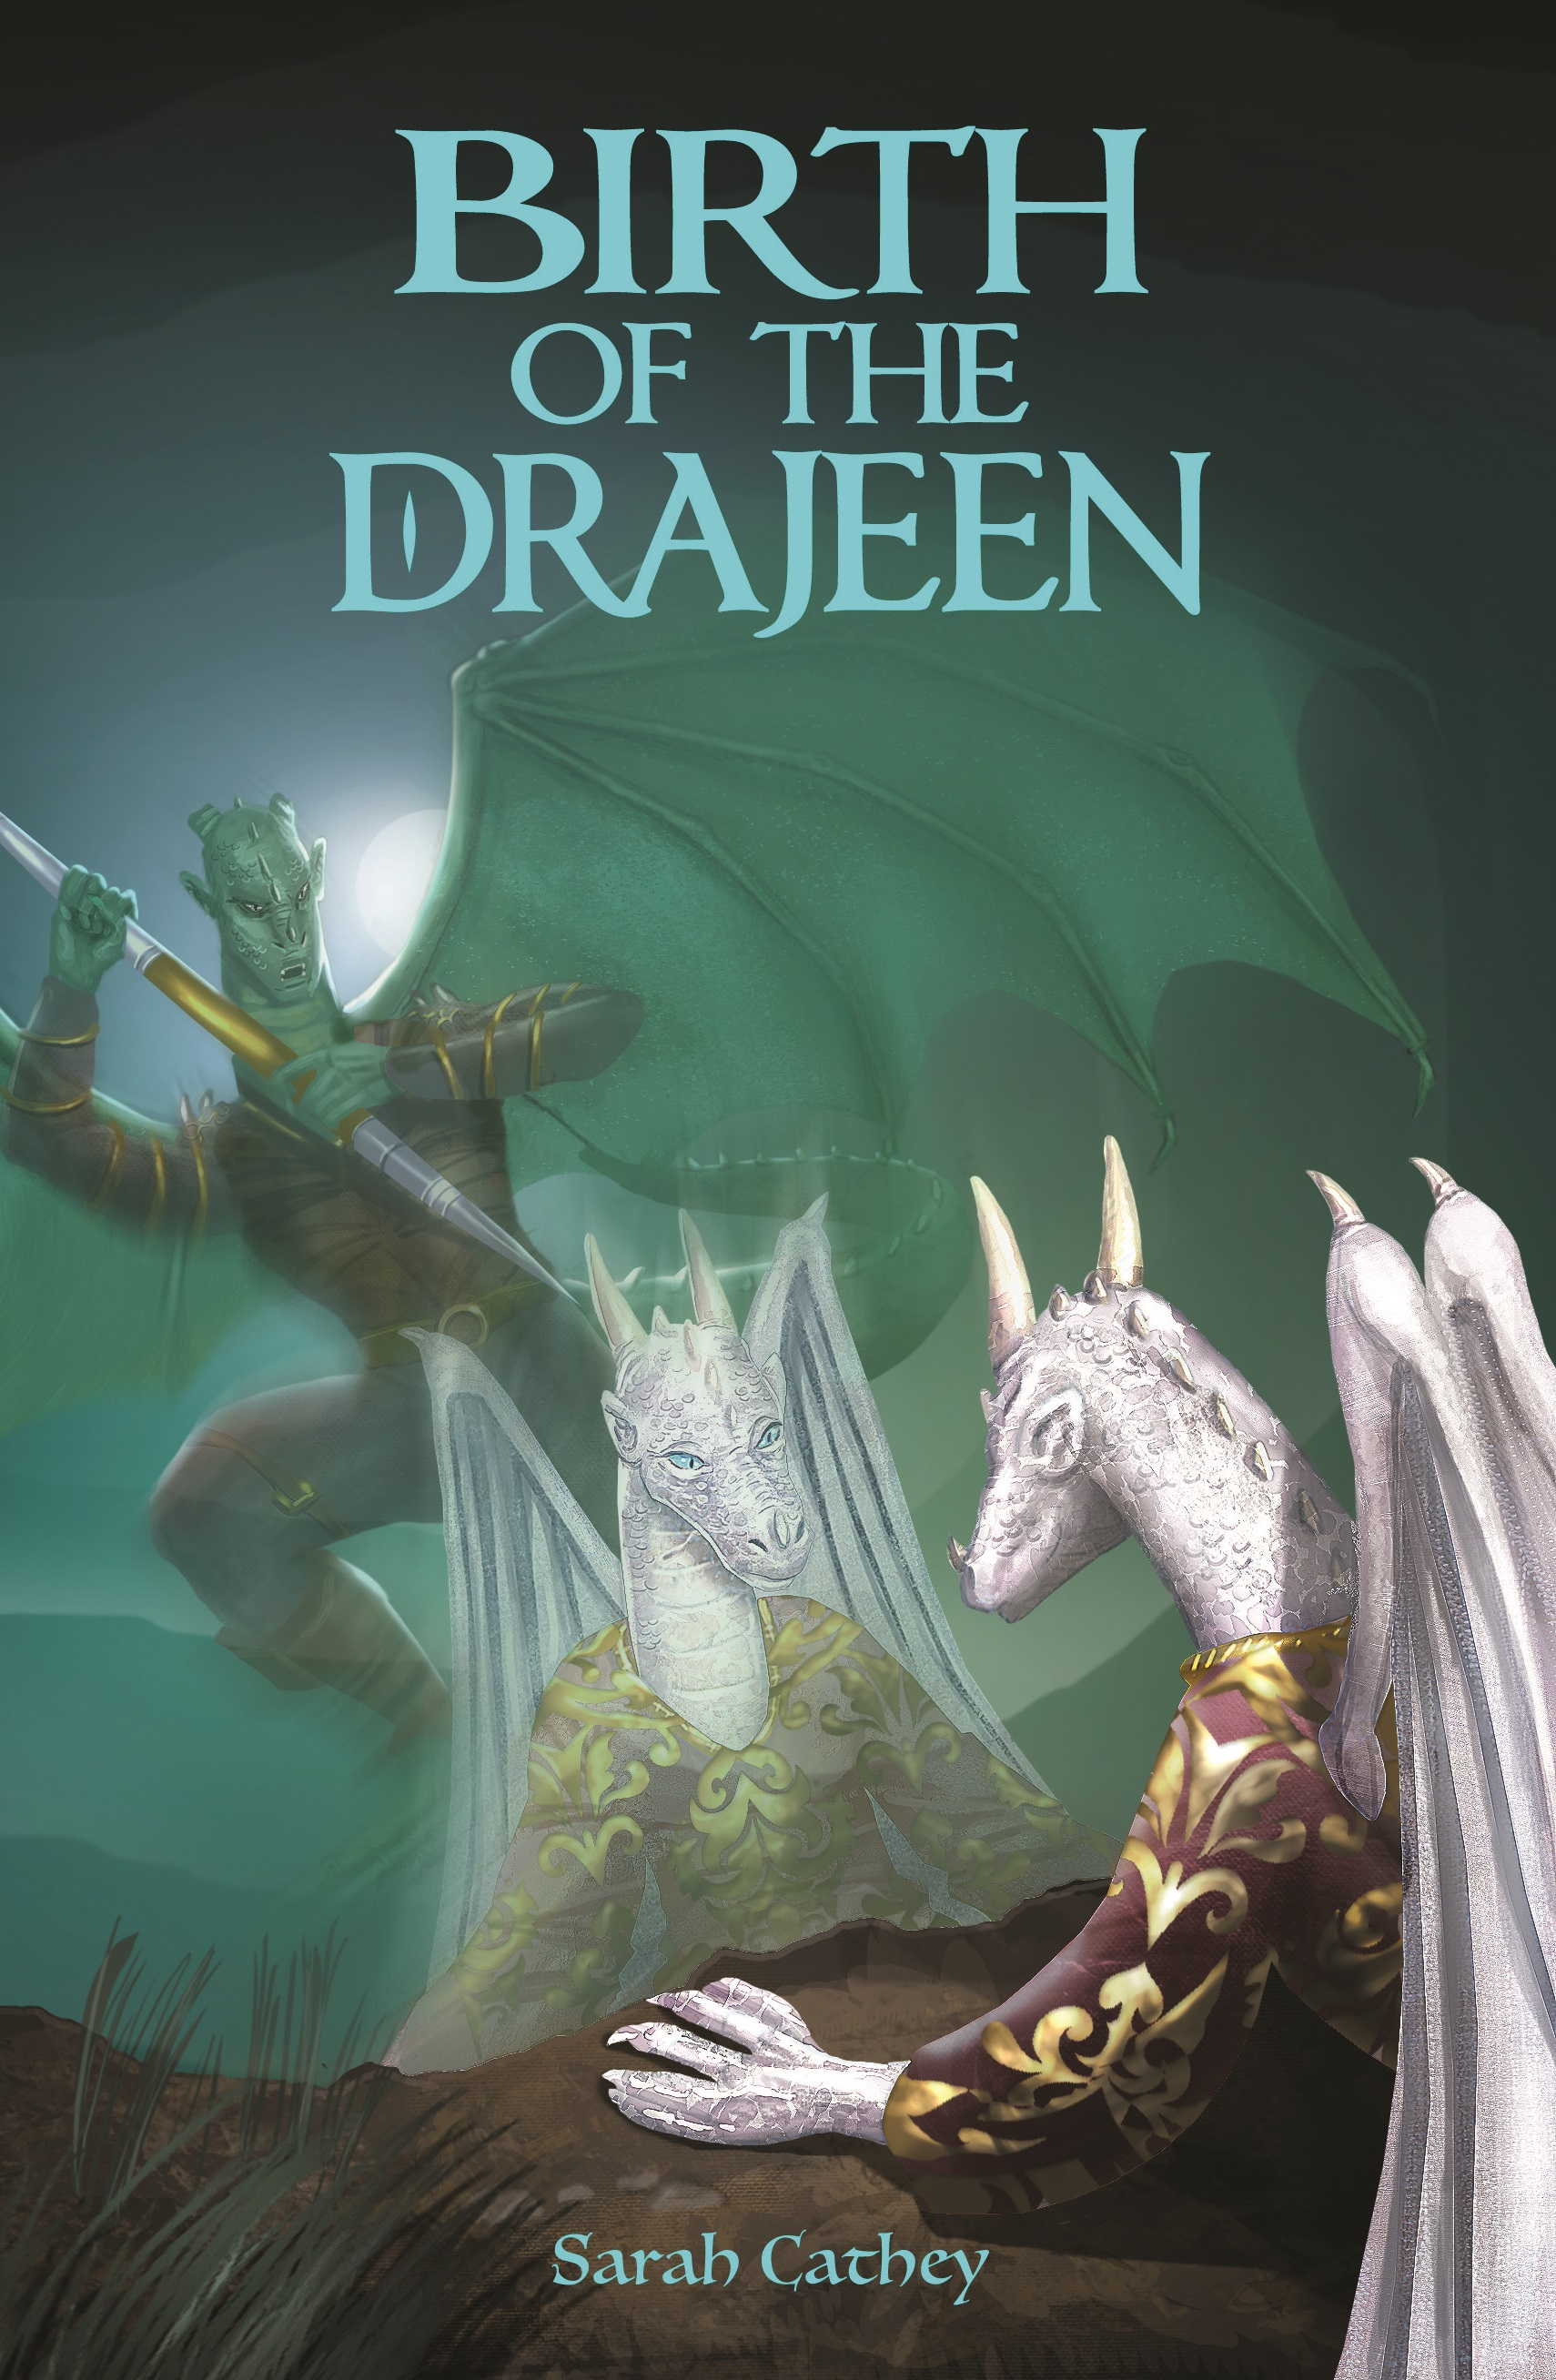 birth-of-the-drajeen-cover-kindle-1